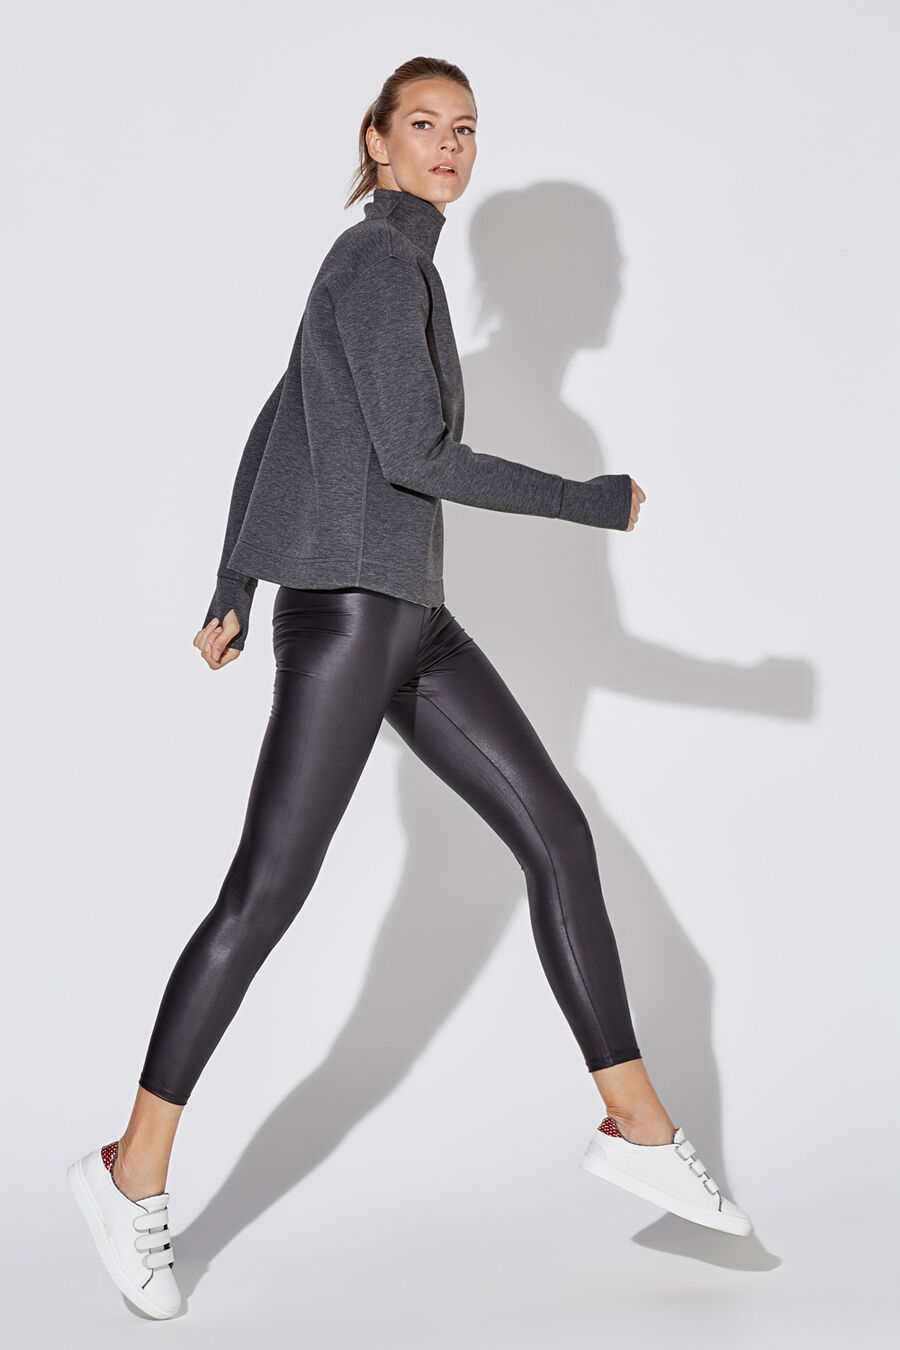 Legging trousers